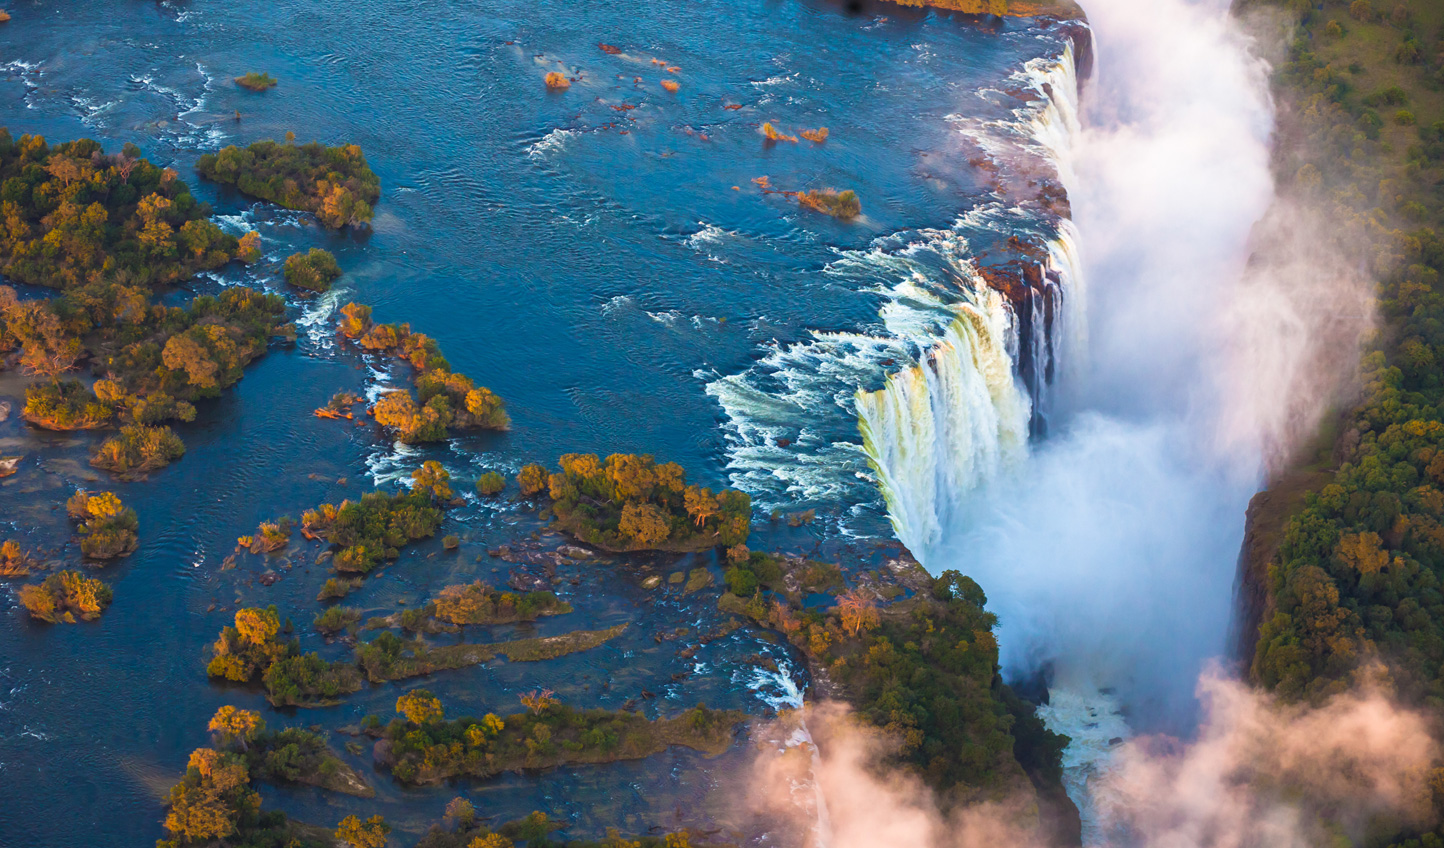 Soar over the might of the Victoria Falls